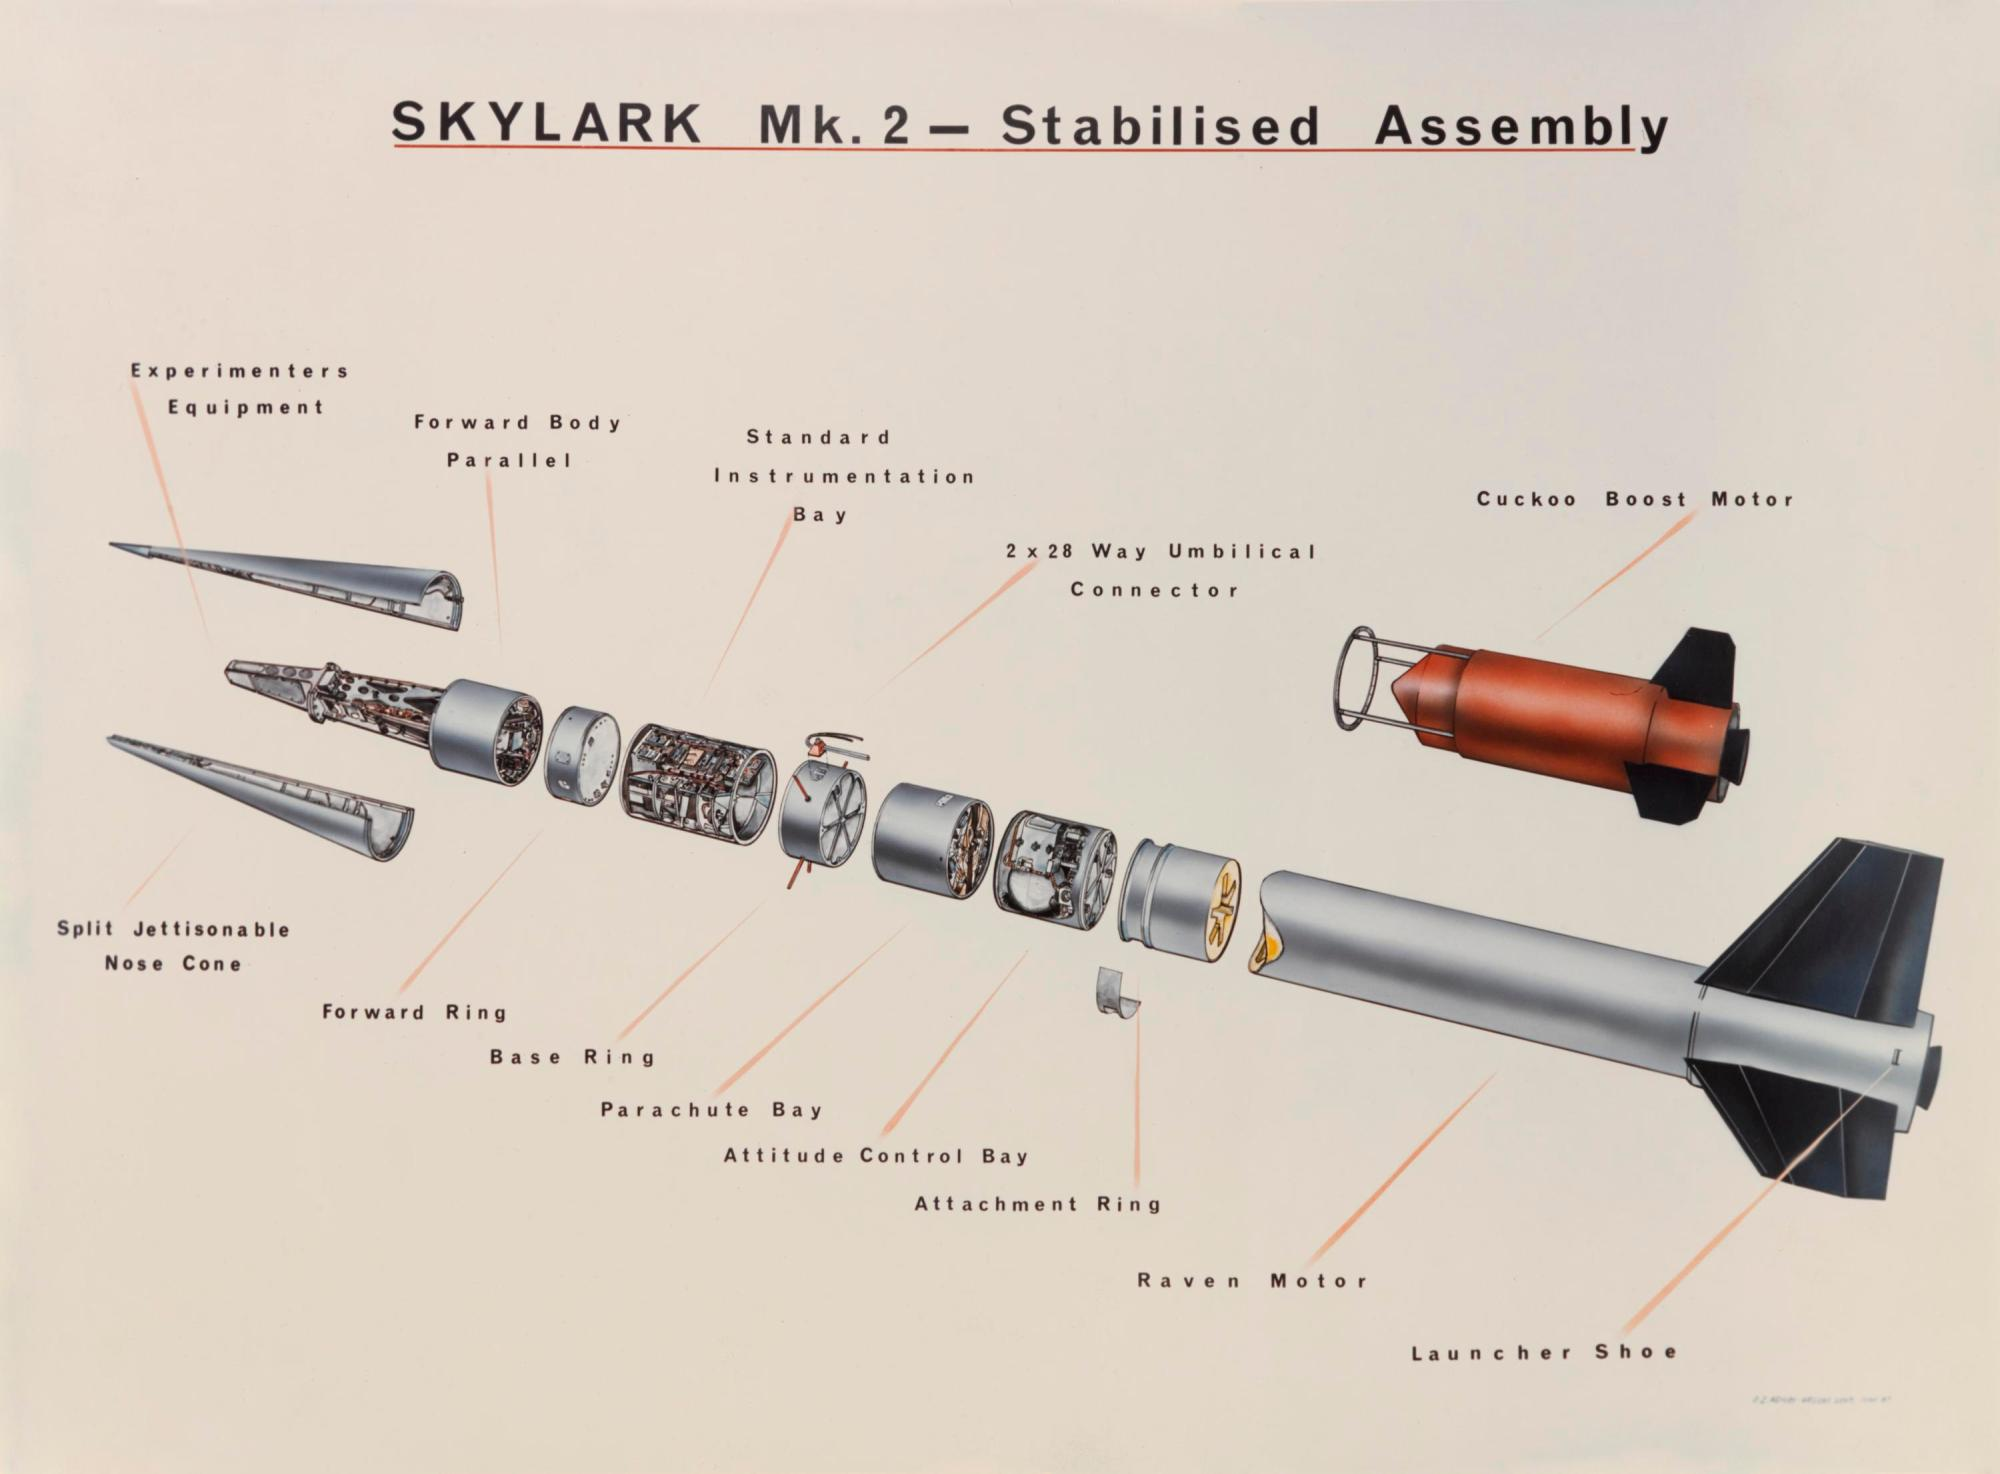 hight resolution of skylark mark ii stabilised assembly diagram of parts with annotation